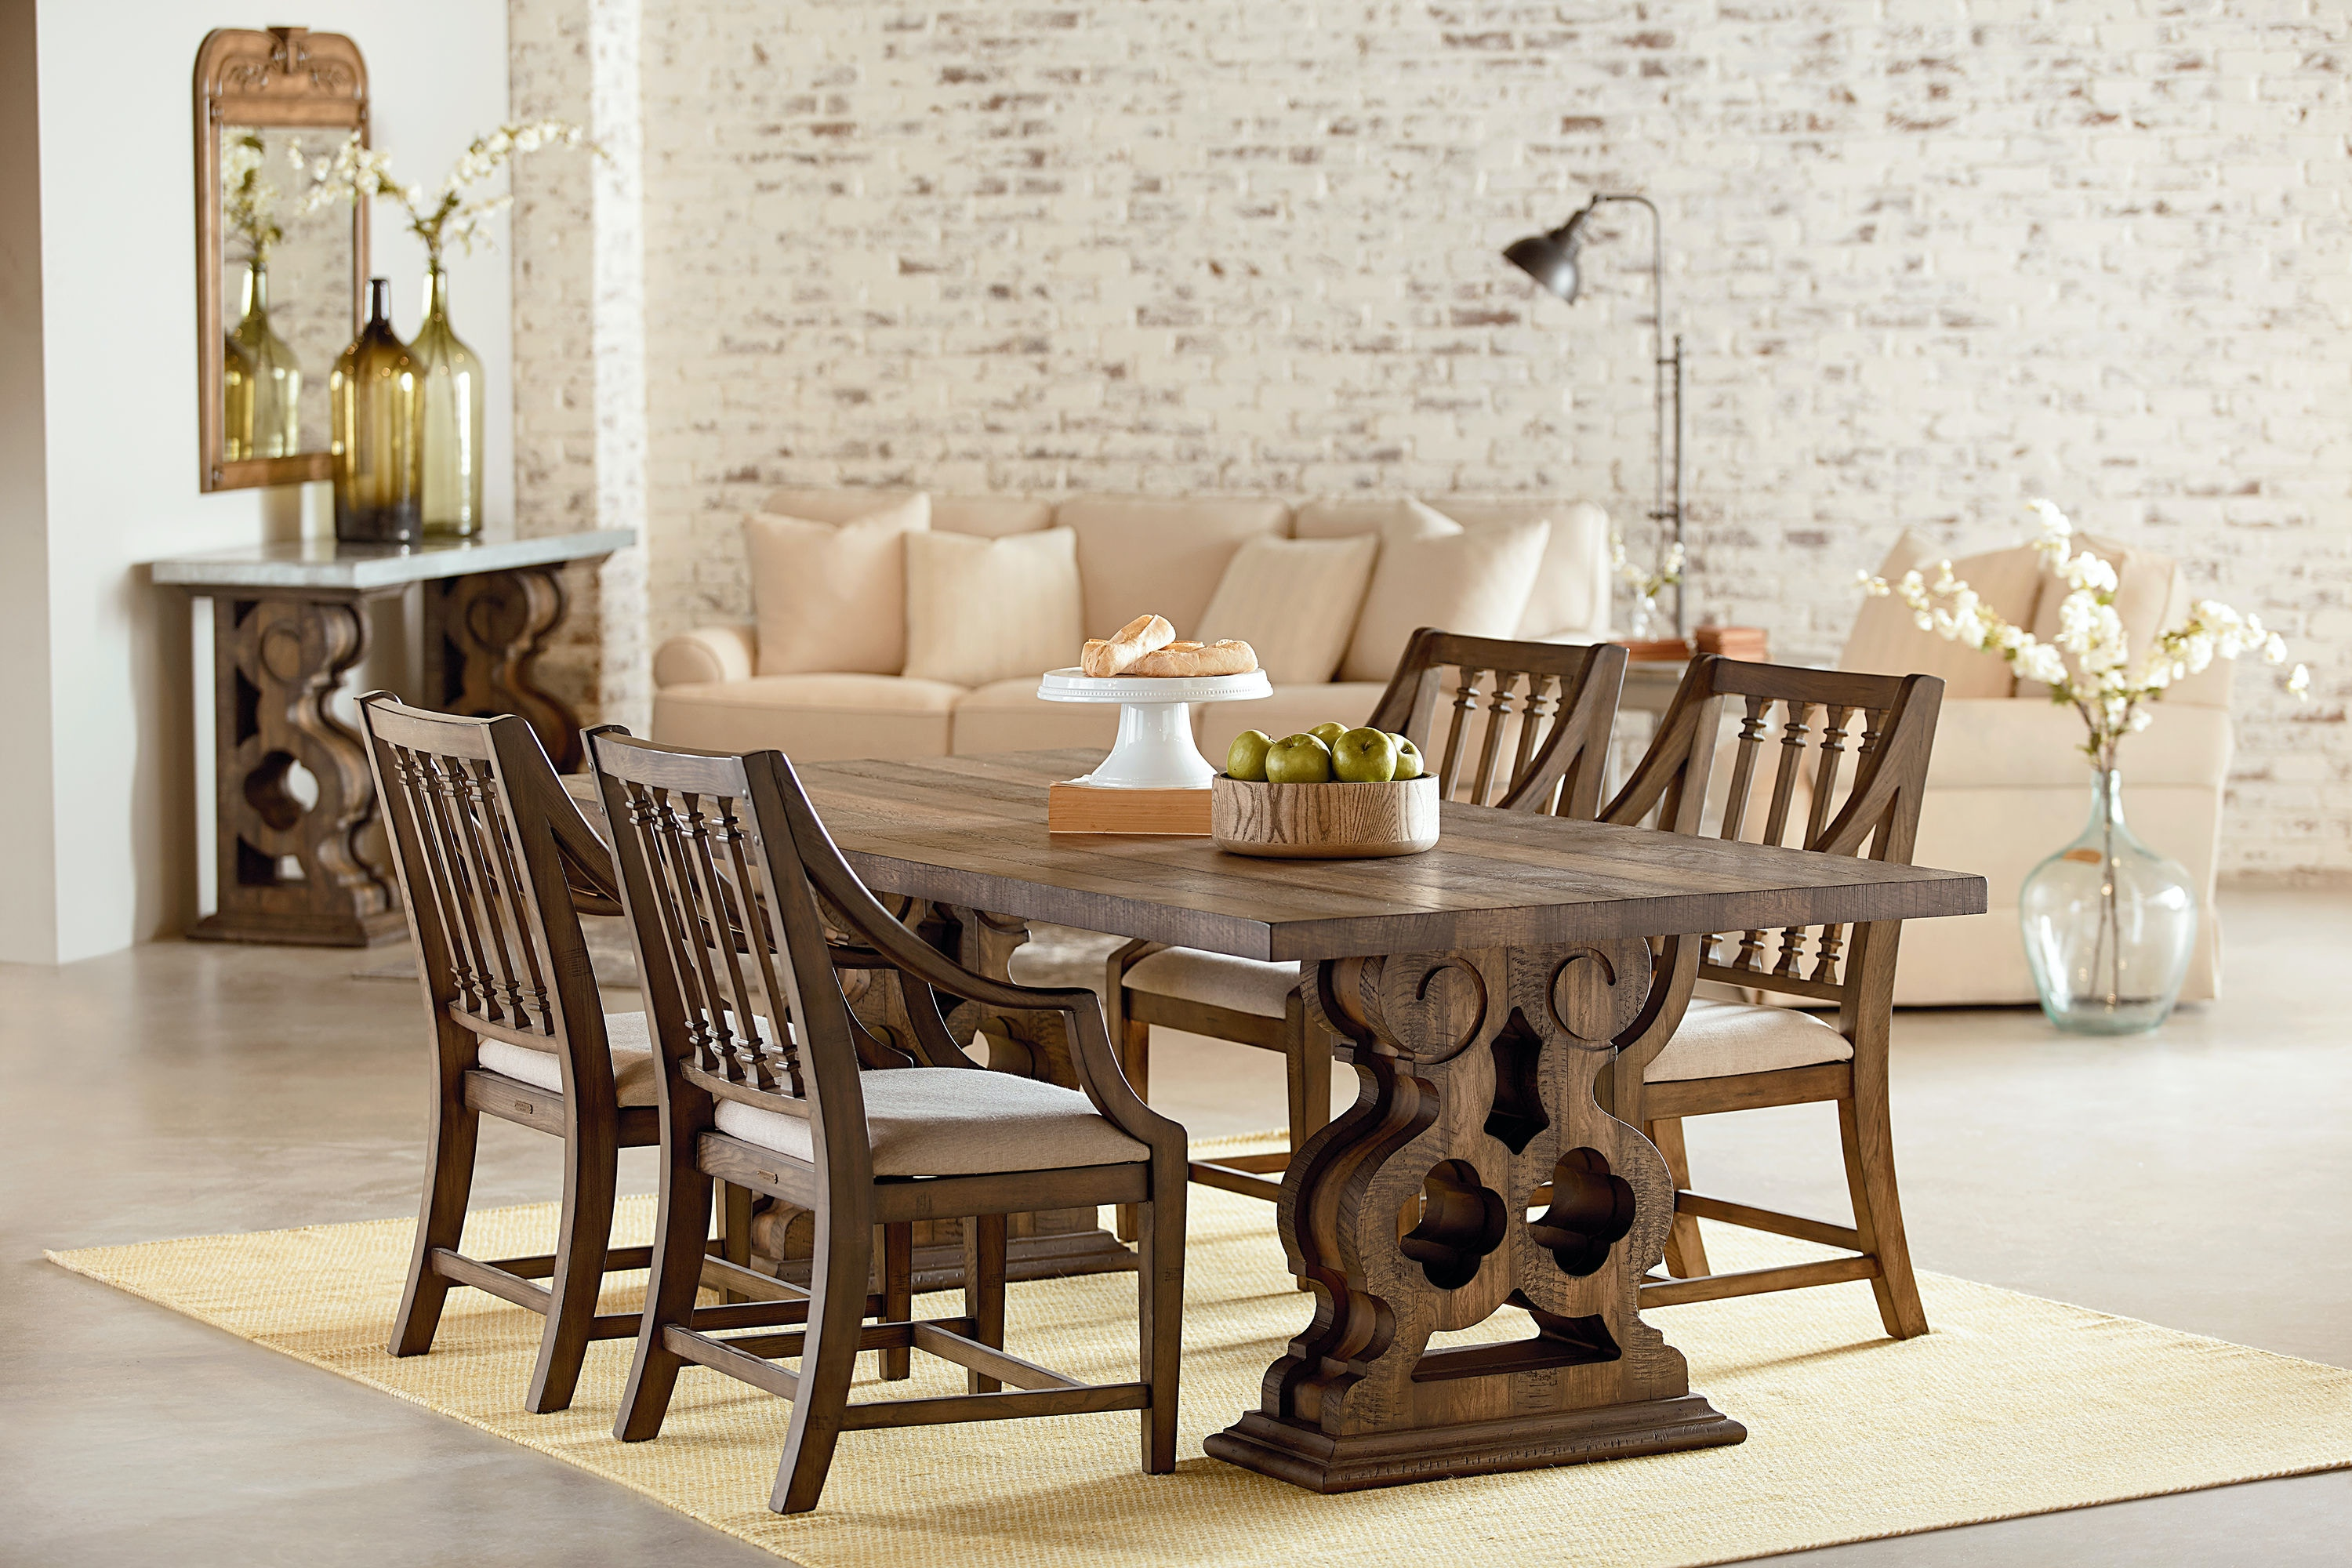 Magnolia Home   Double Pedestal Dining Table KT:50575